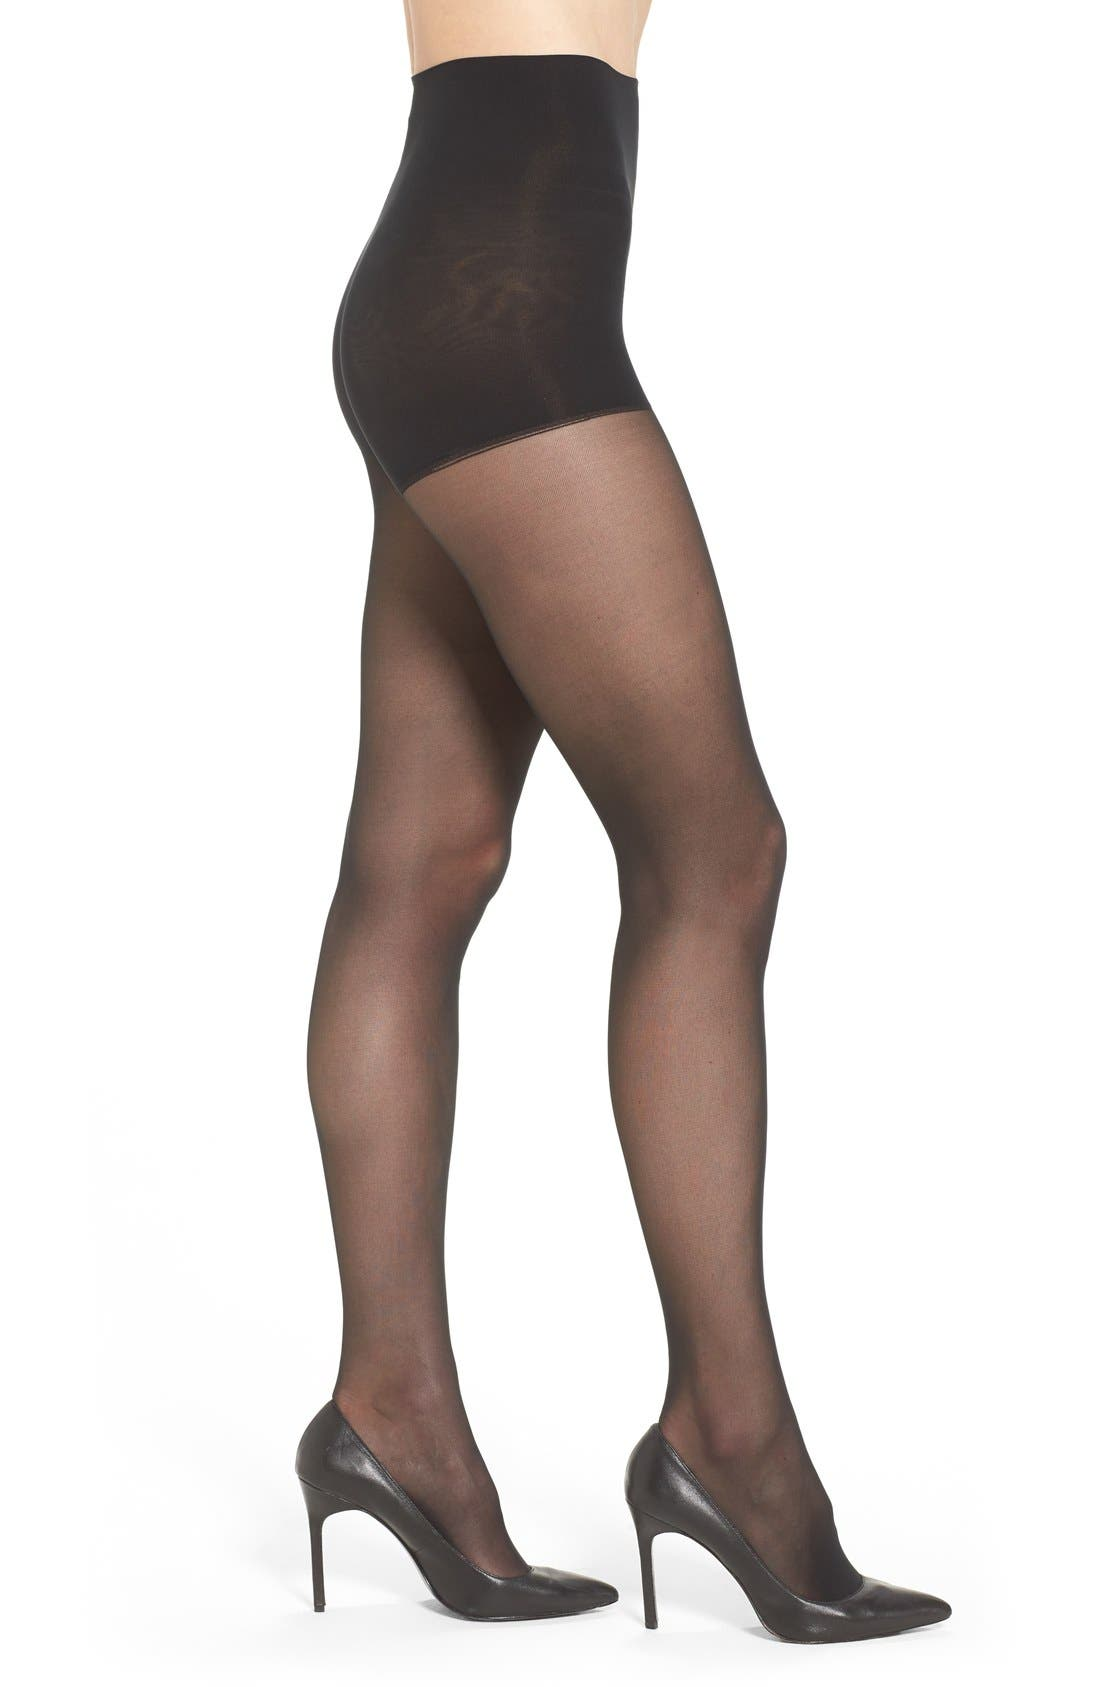 Alternate Image 1 Selected - DKNY Light Opaque Control Top Tights (2 for $25)